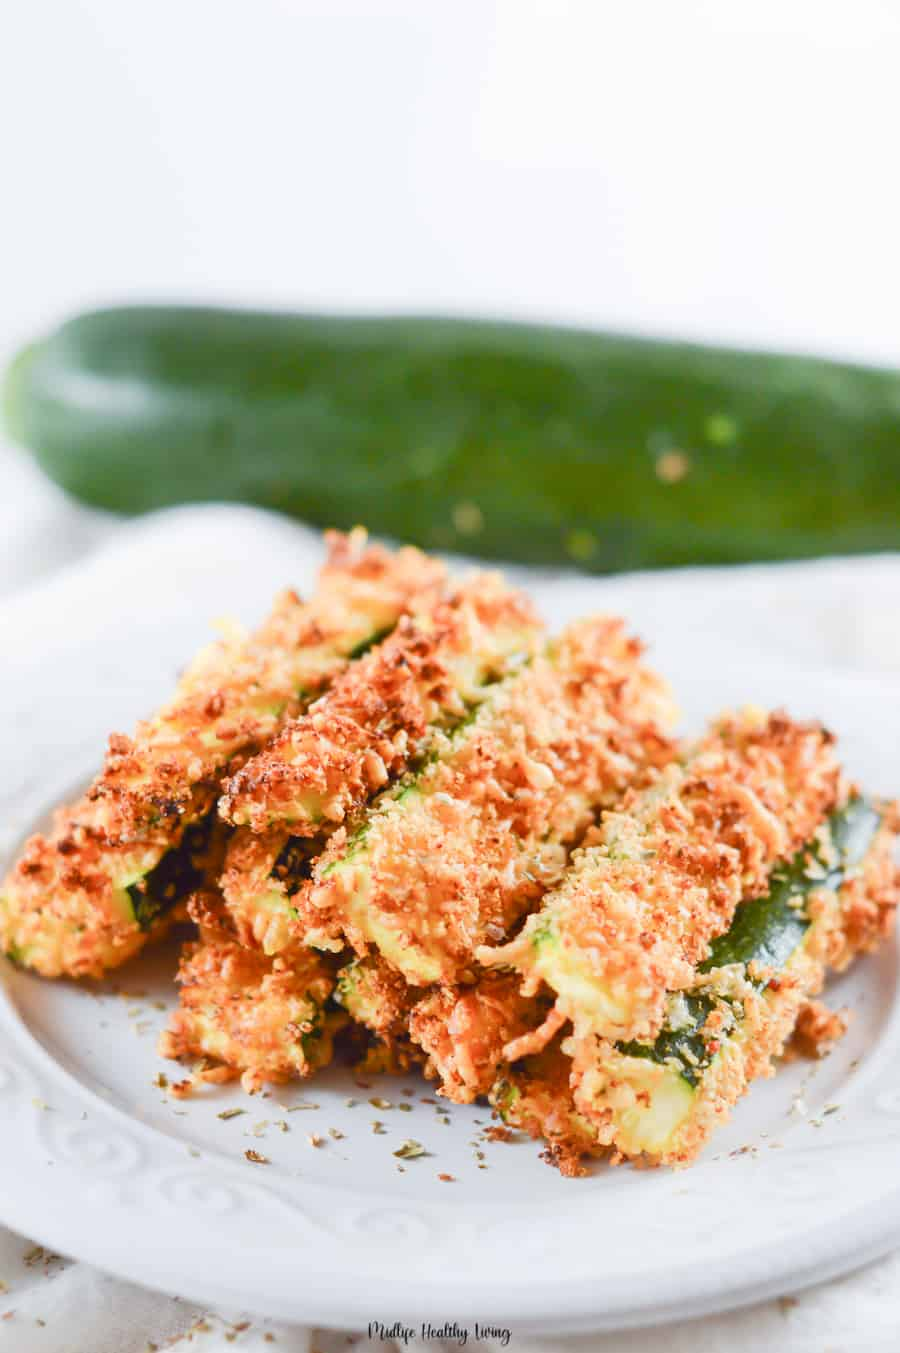 A look at the finished zucchini fries ready to be shared and enjoyed.